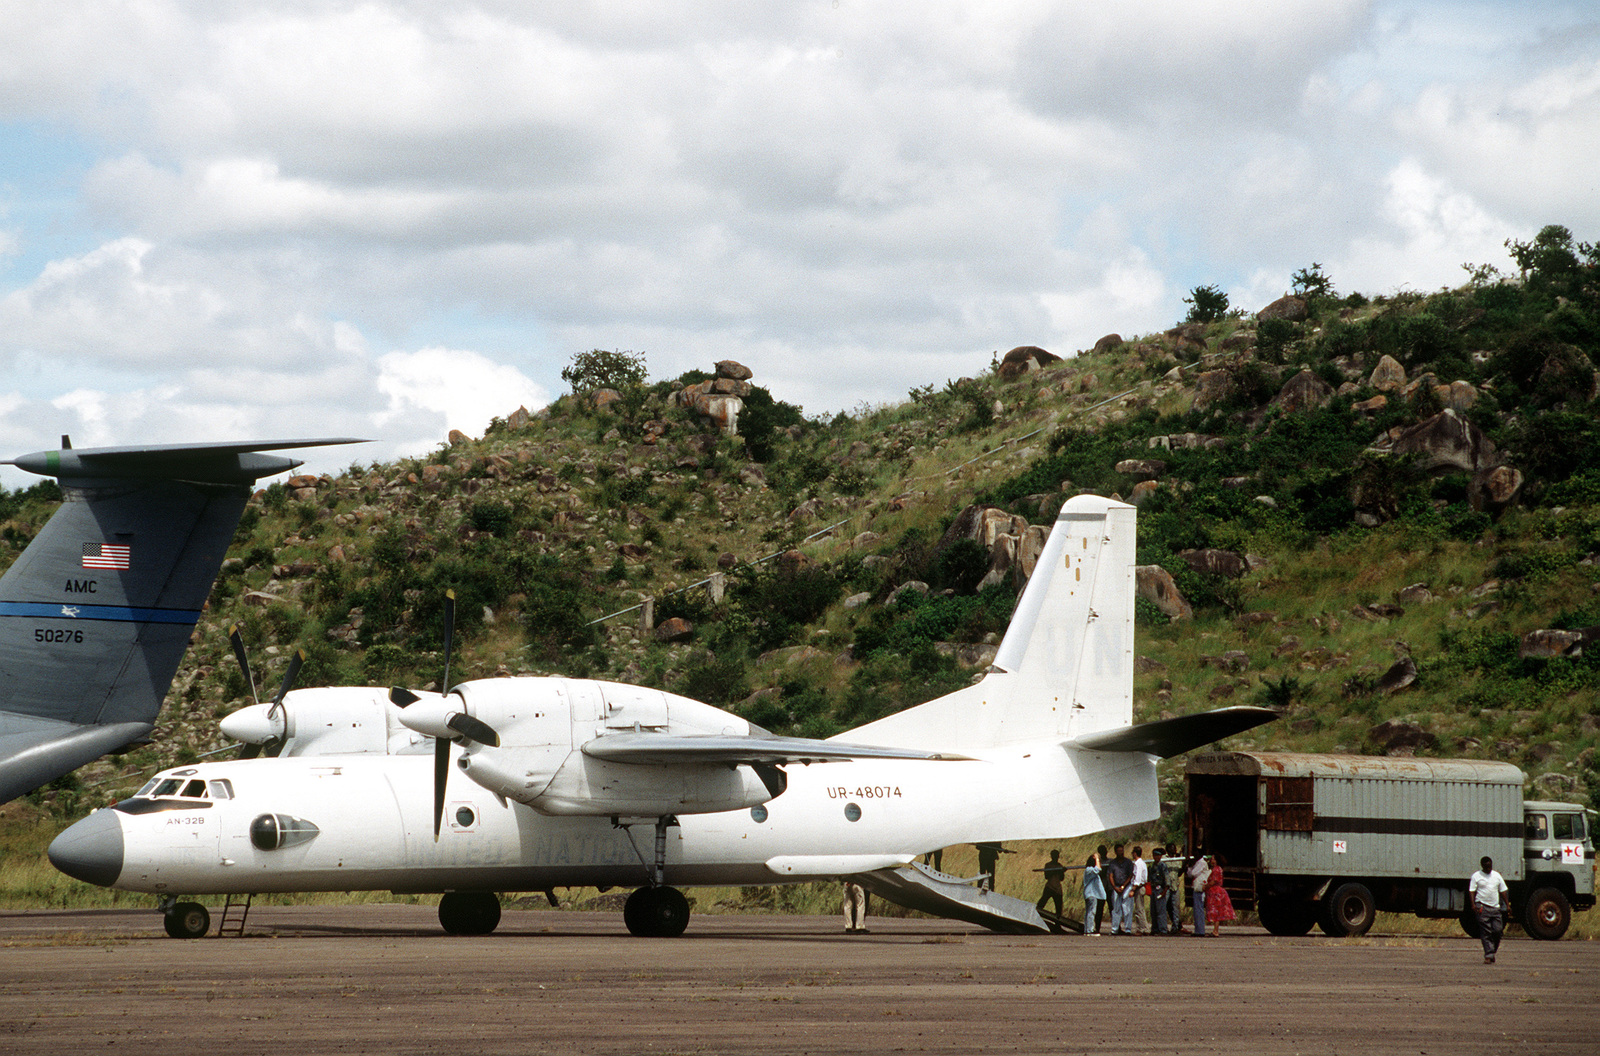 A left side view of an AN-32 Cline Russian aircraft being used by the Red Cross during the airlift